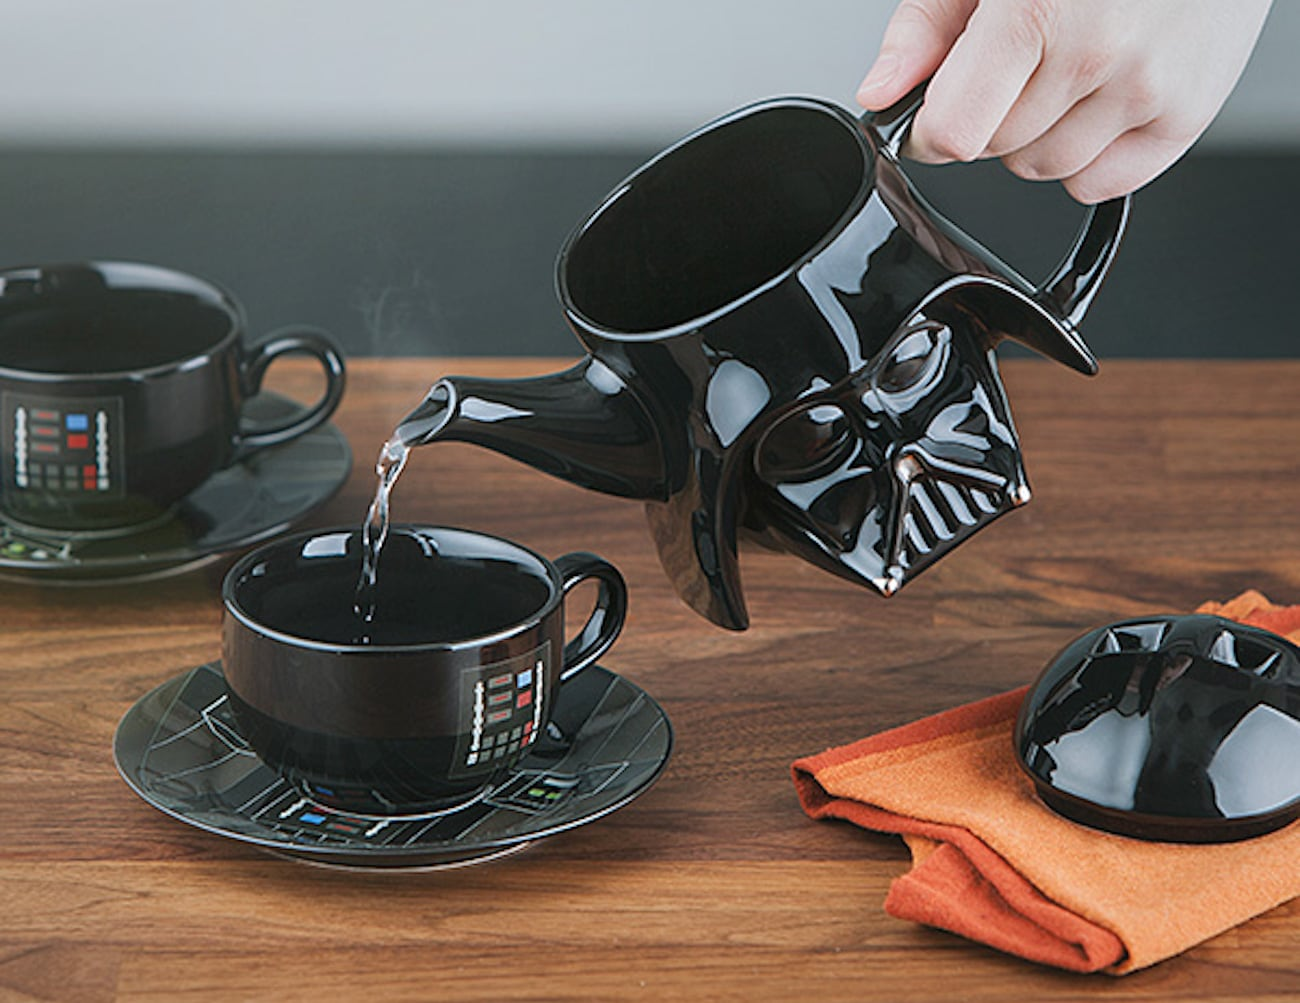 Star Wars Cooking Supplies Star Wars Darth Vader Teapot Set Gadget Flow